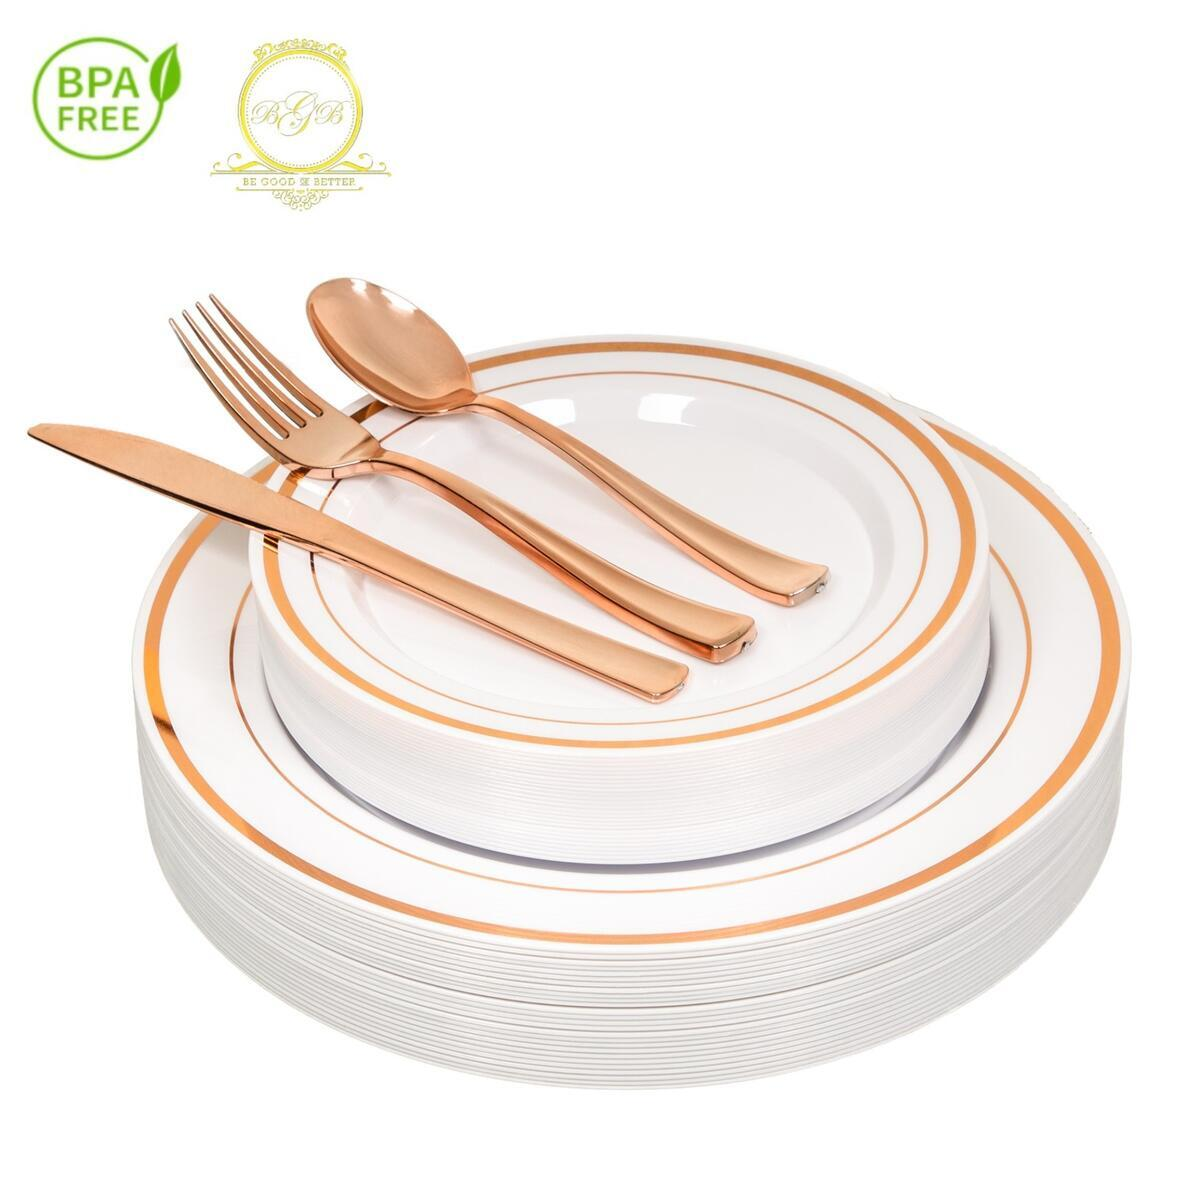 *On SALE* ROSE GOLD Plastic Disposable Plates Silverware 26 guests 130 Pcs (eBay)